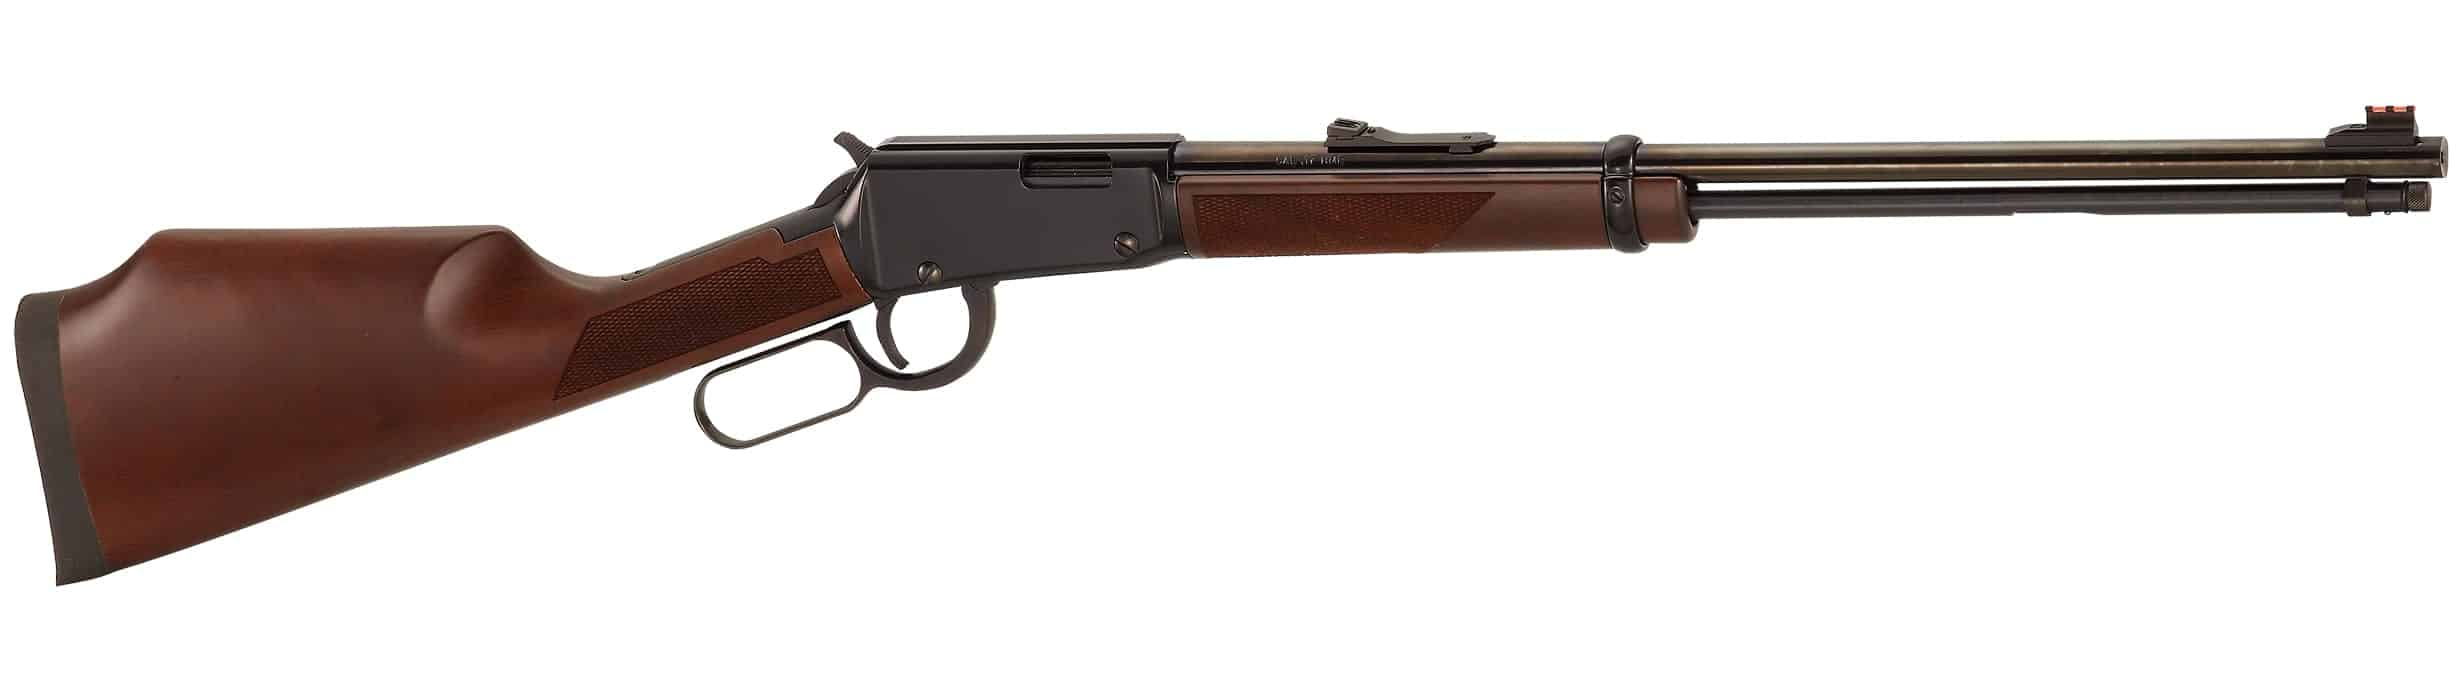 Henry Repeating Arms Henry H001v 17hmr Lever Wood 20